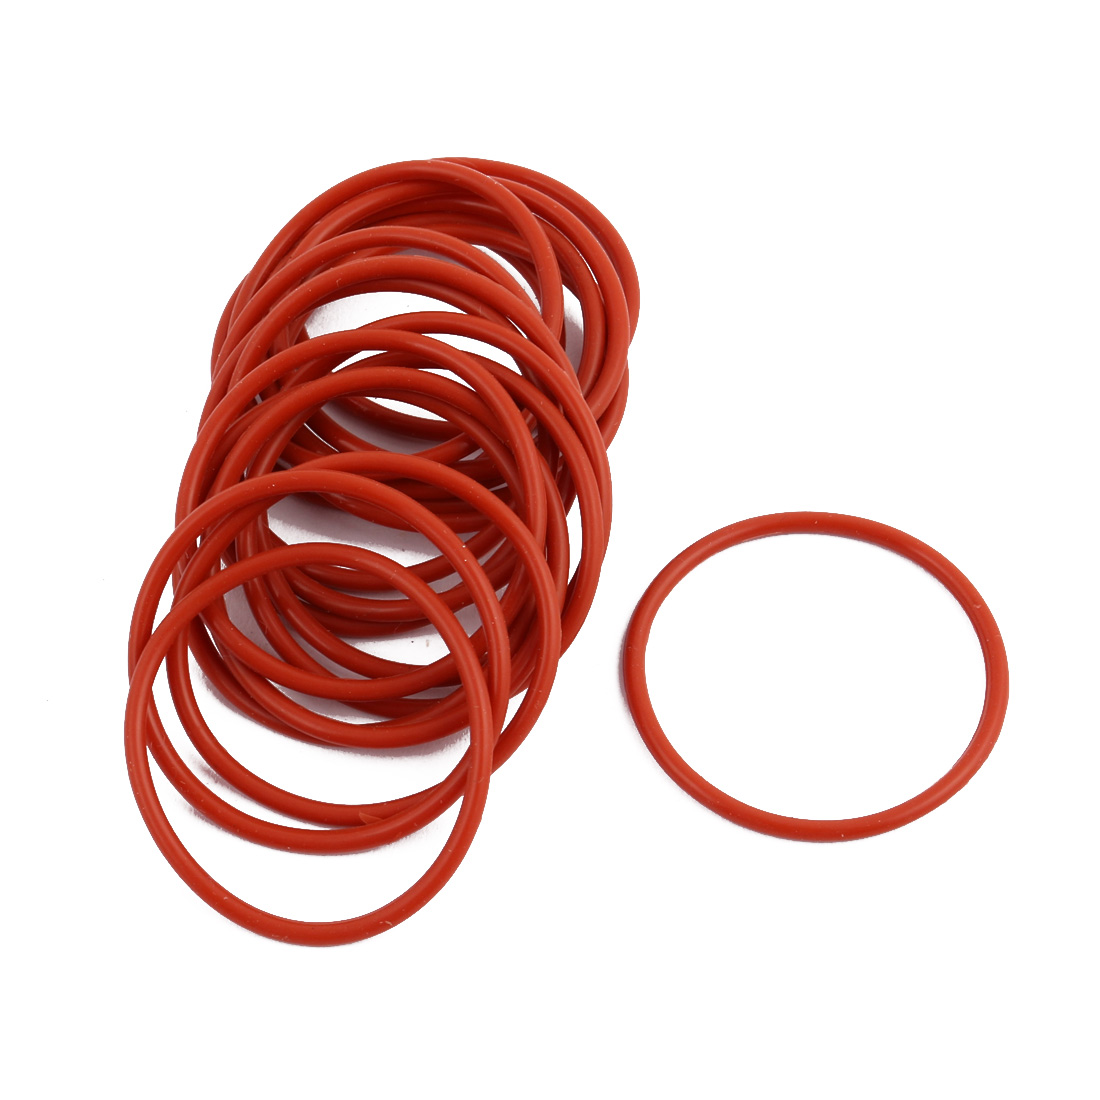 19pcs Red Round Nitrile Butadiene Rubber NBR O-Ring 32mm OD 1.9mm Width